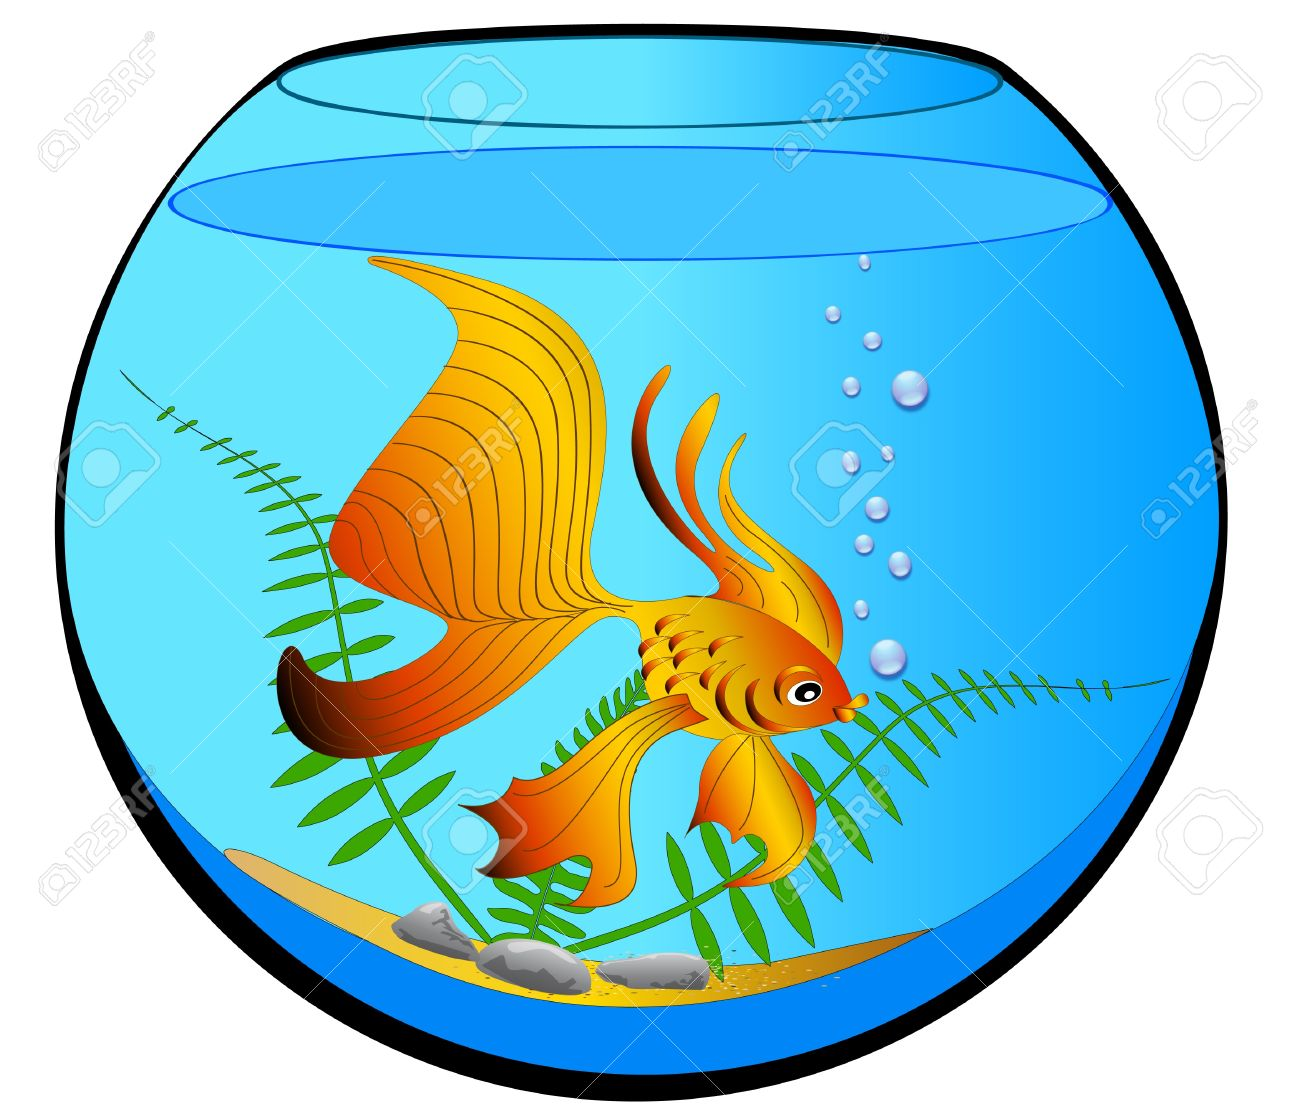 Aquarium clipart animated. Collection of free download